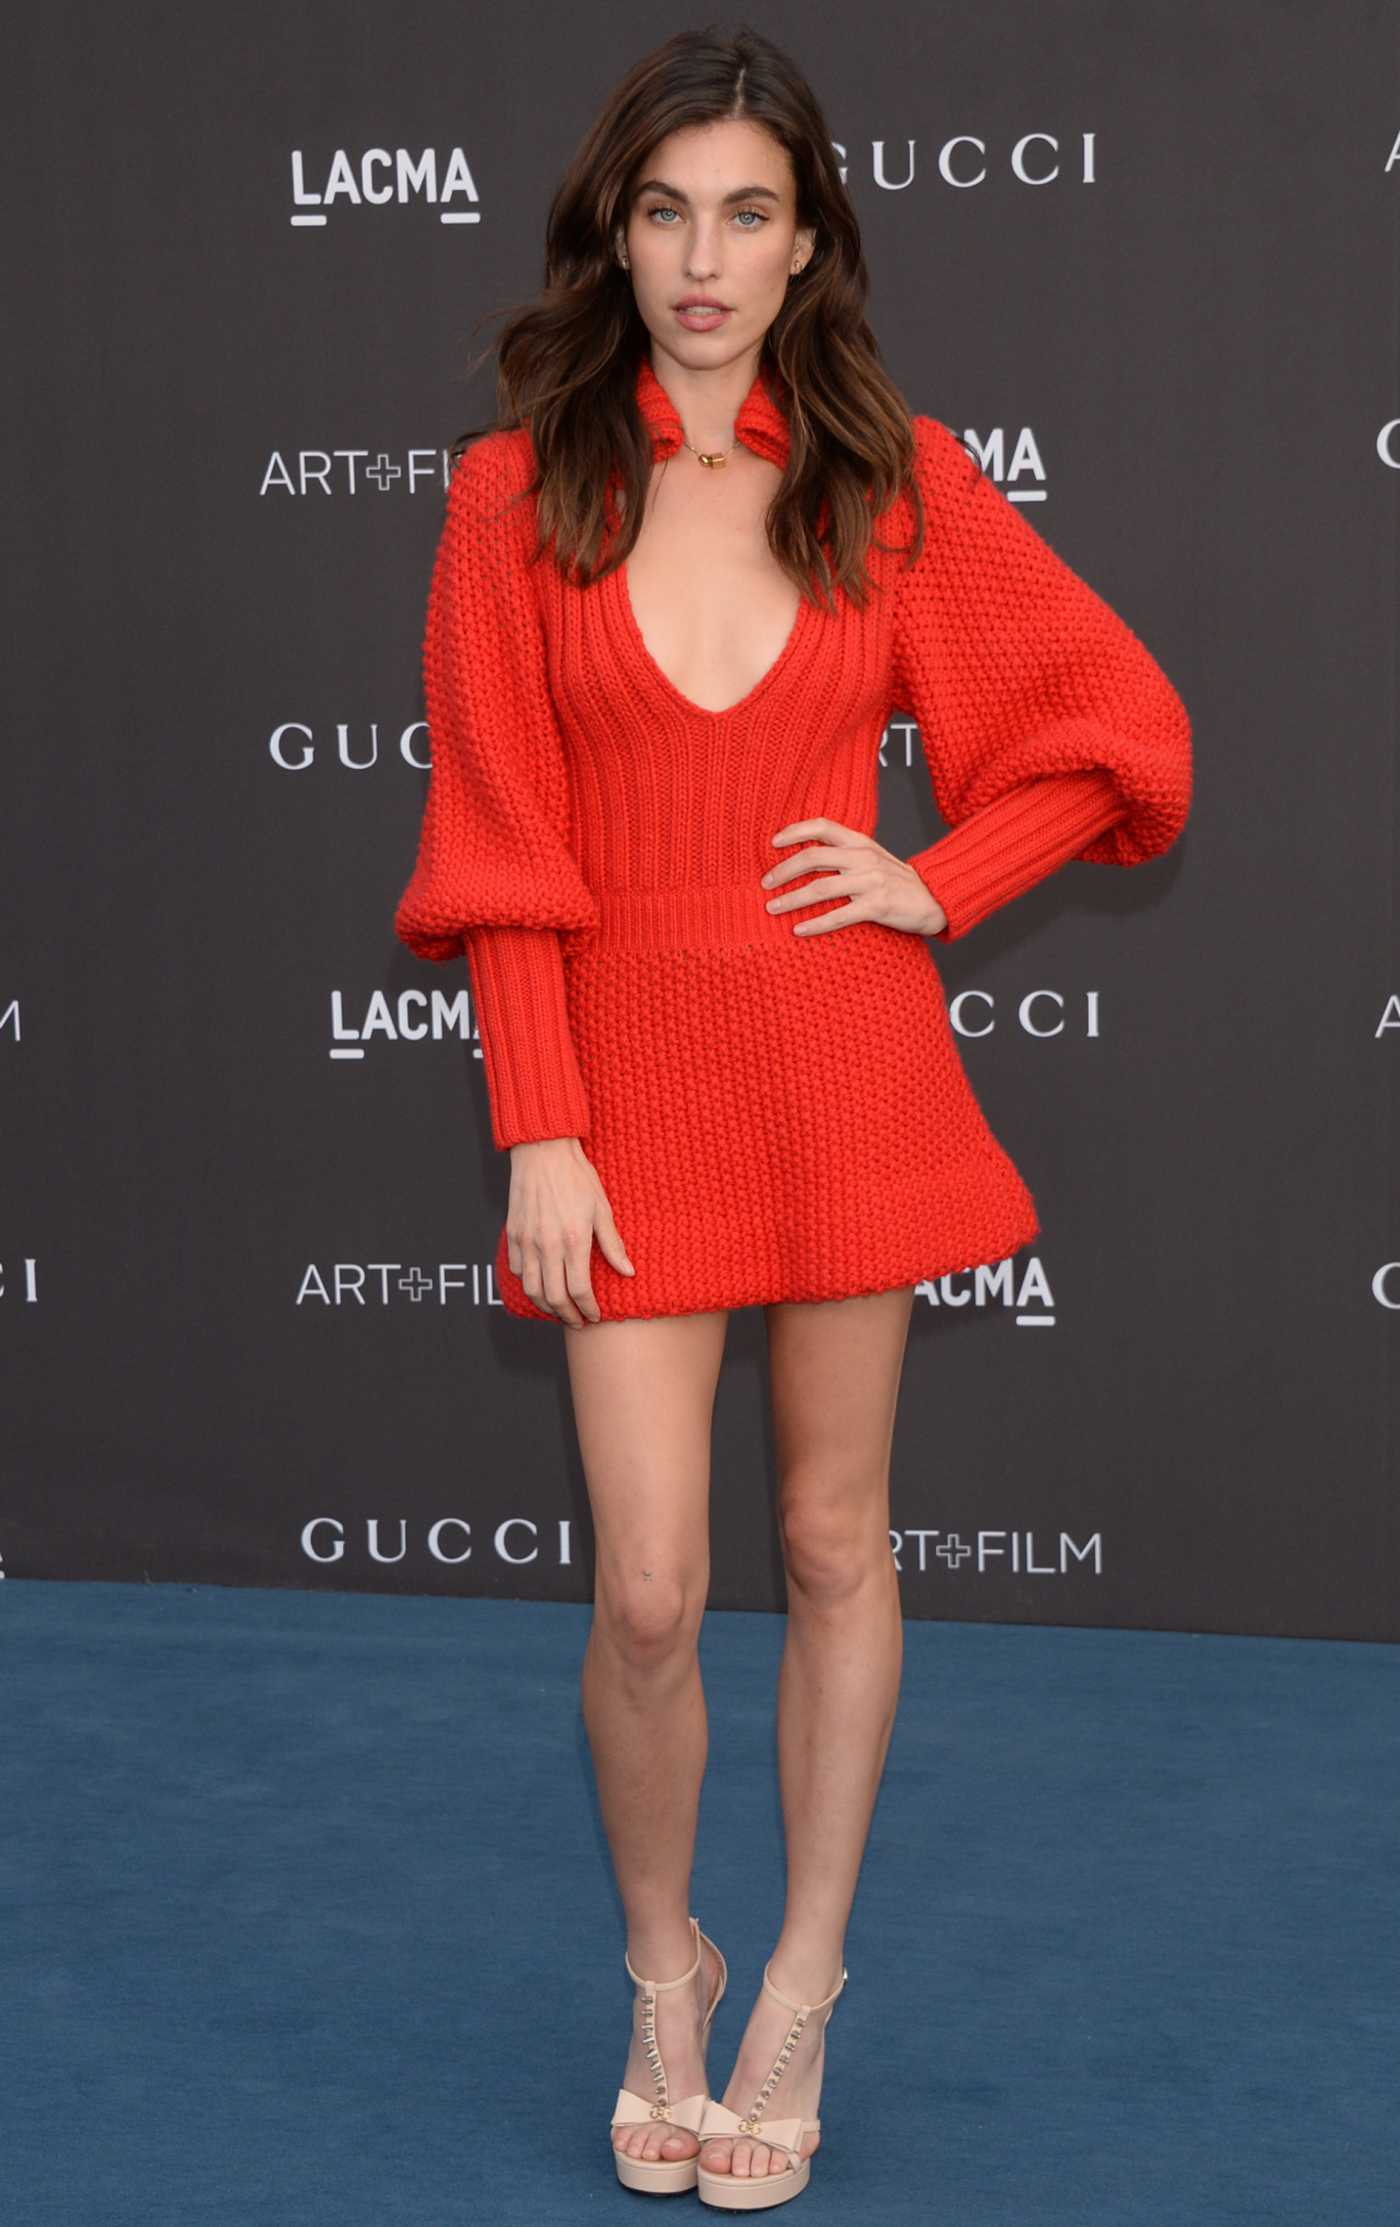 Rainey Qualley Attends 2019 LACMA Art and Film Gala Honoring Betye Saar And Alfonso Cuaron Presented By Gucci in Los Angeles 11/02/2019